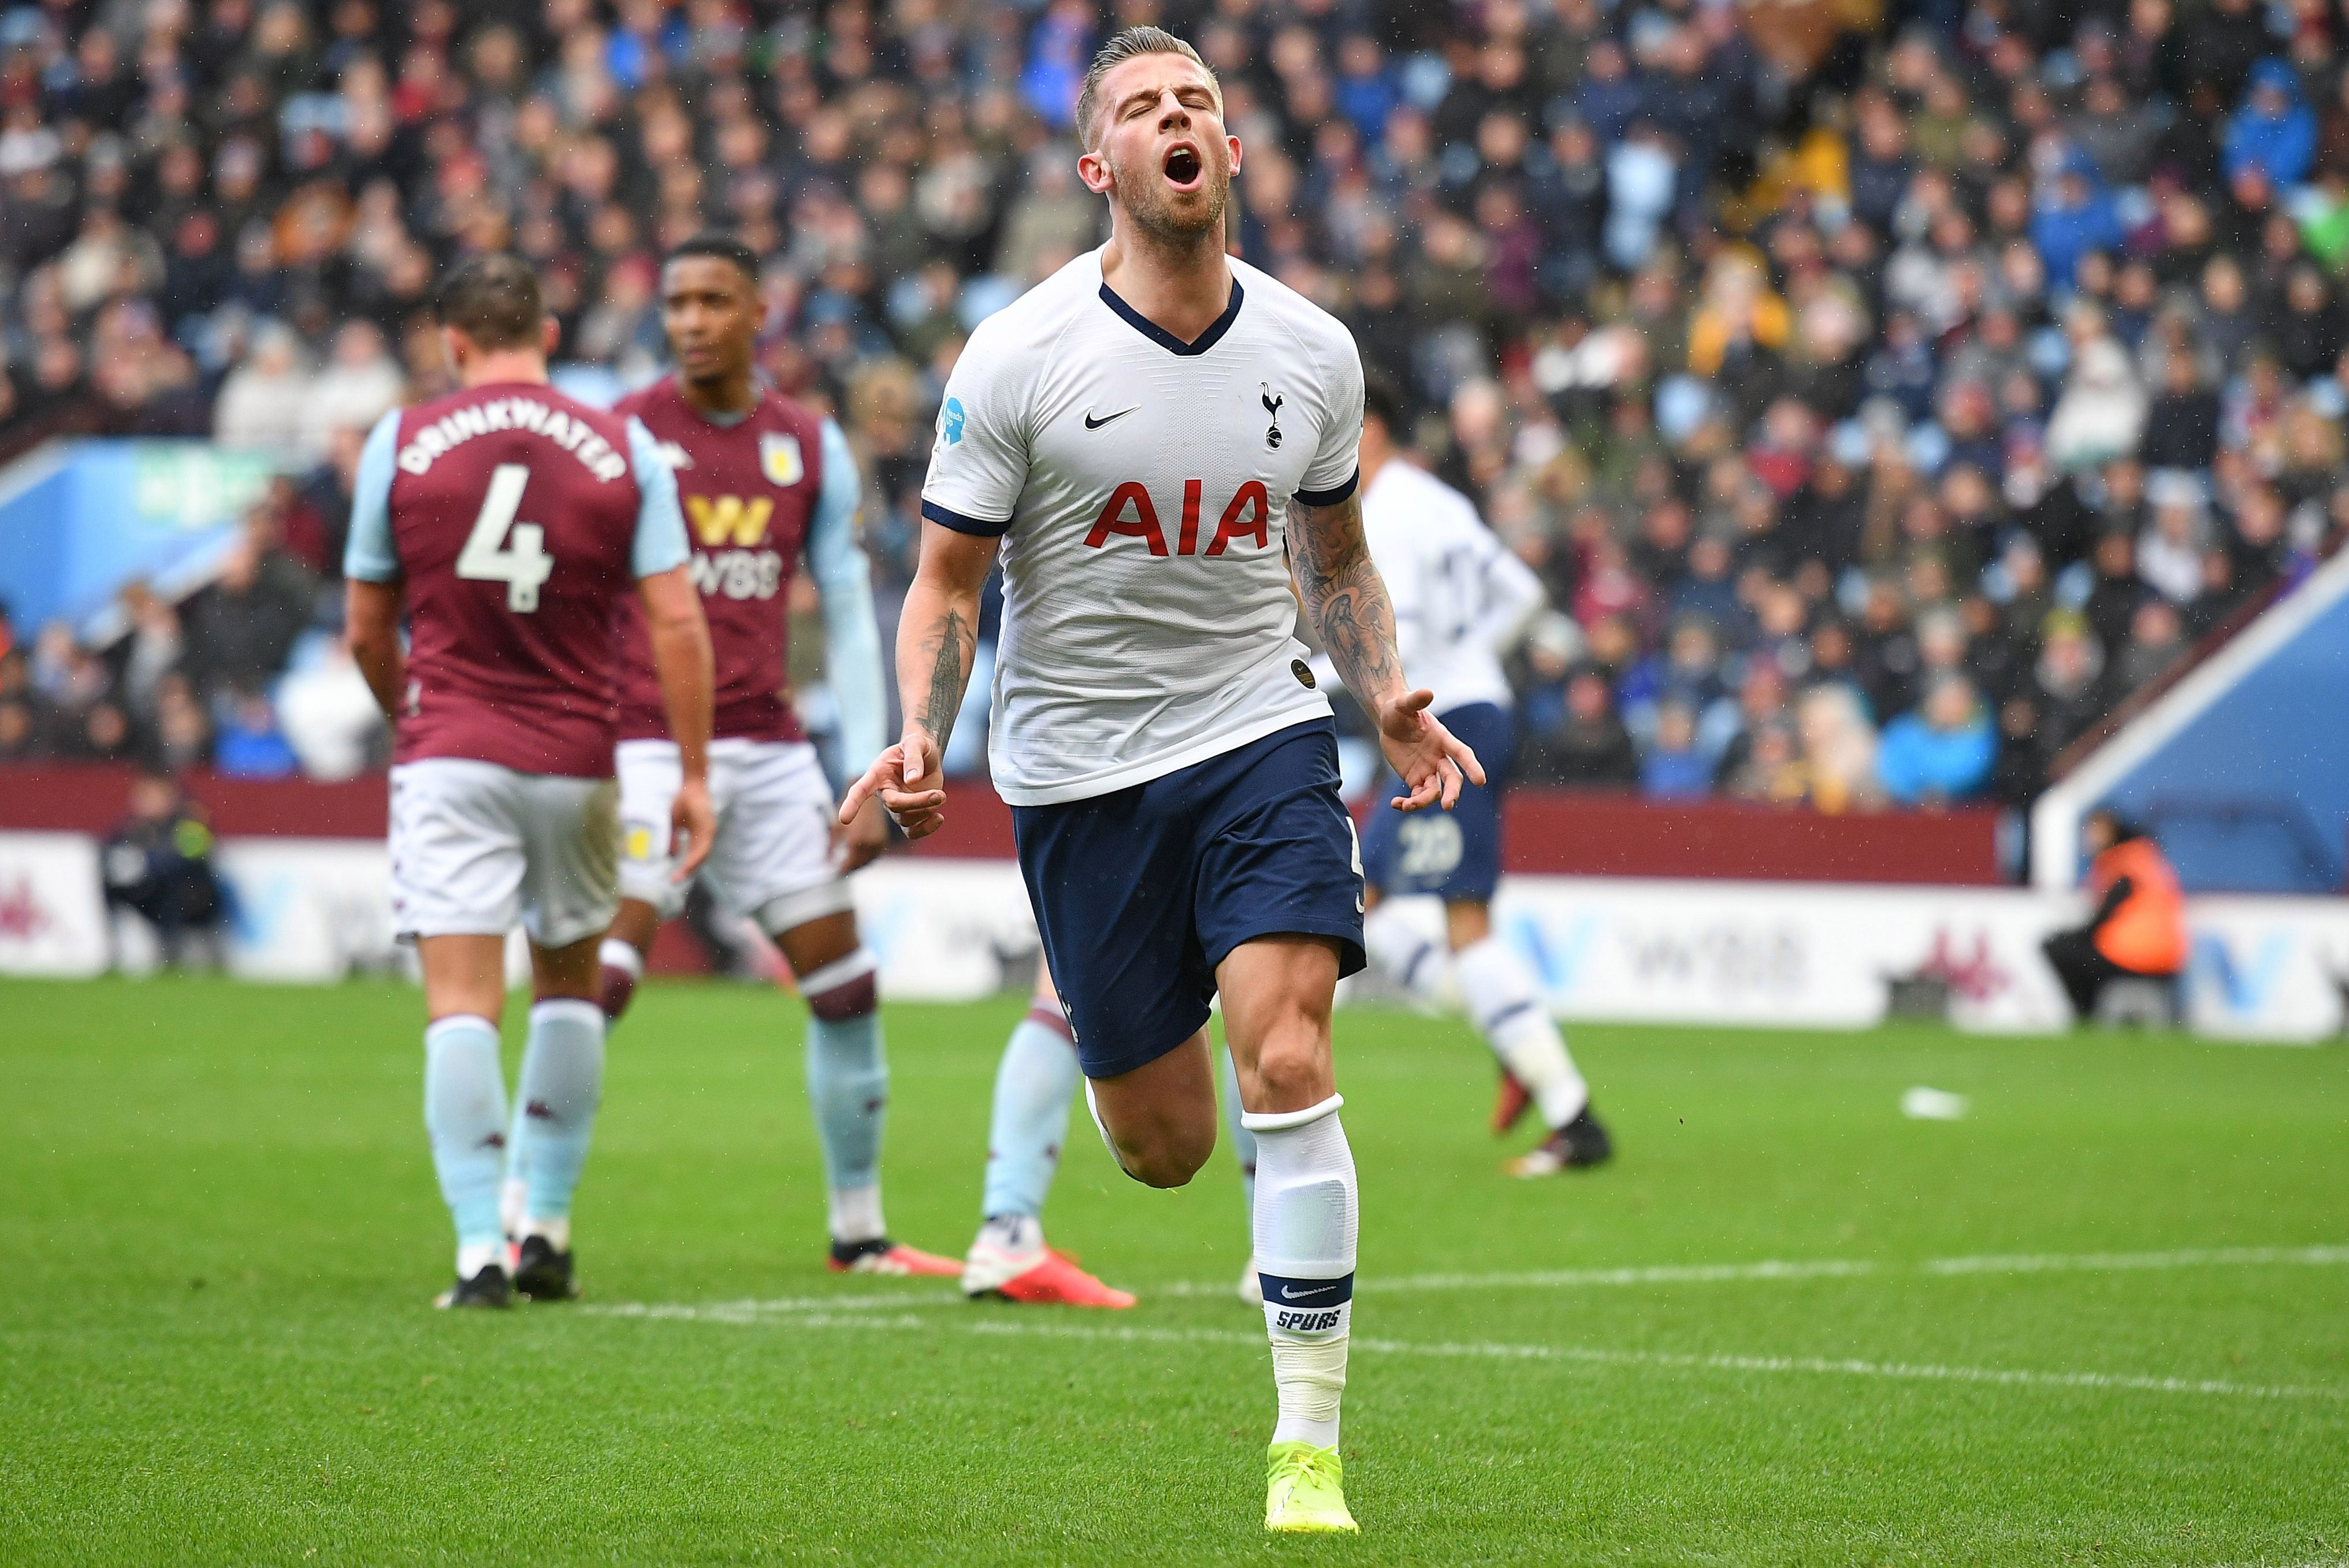 Toby Alderweireld should have named new baby 'Lucas', Spurs received odd Champions League gifts and amazing celebrations vs Aston Villa